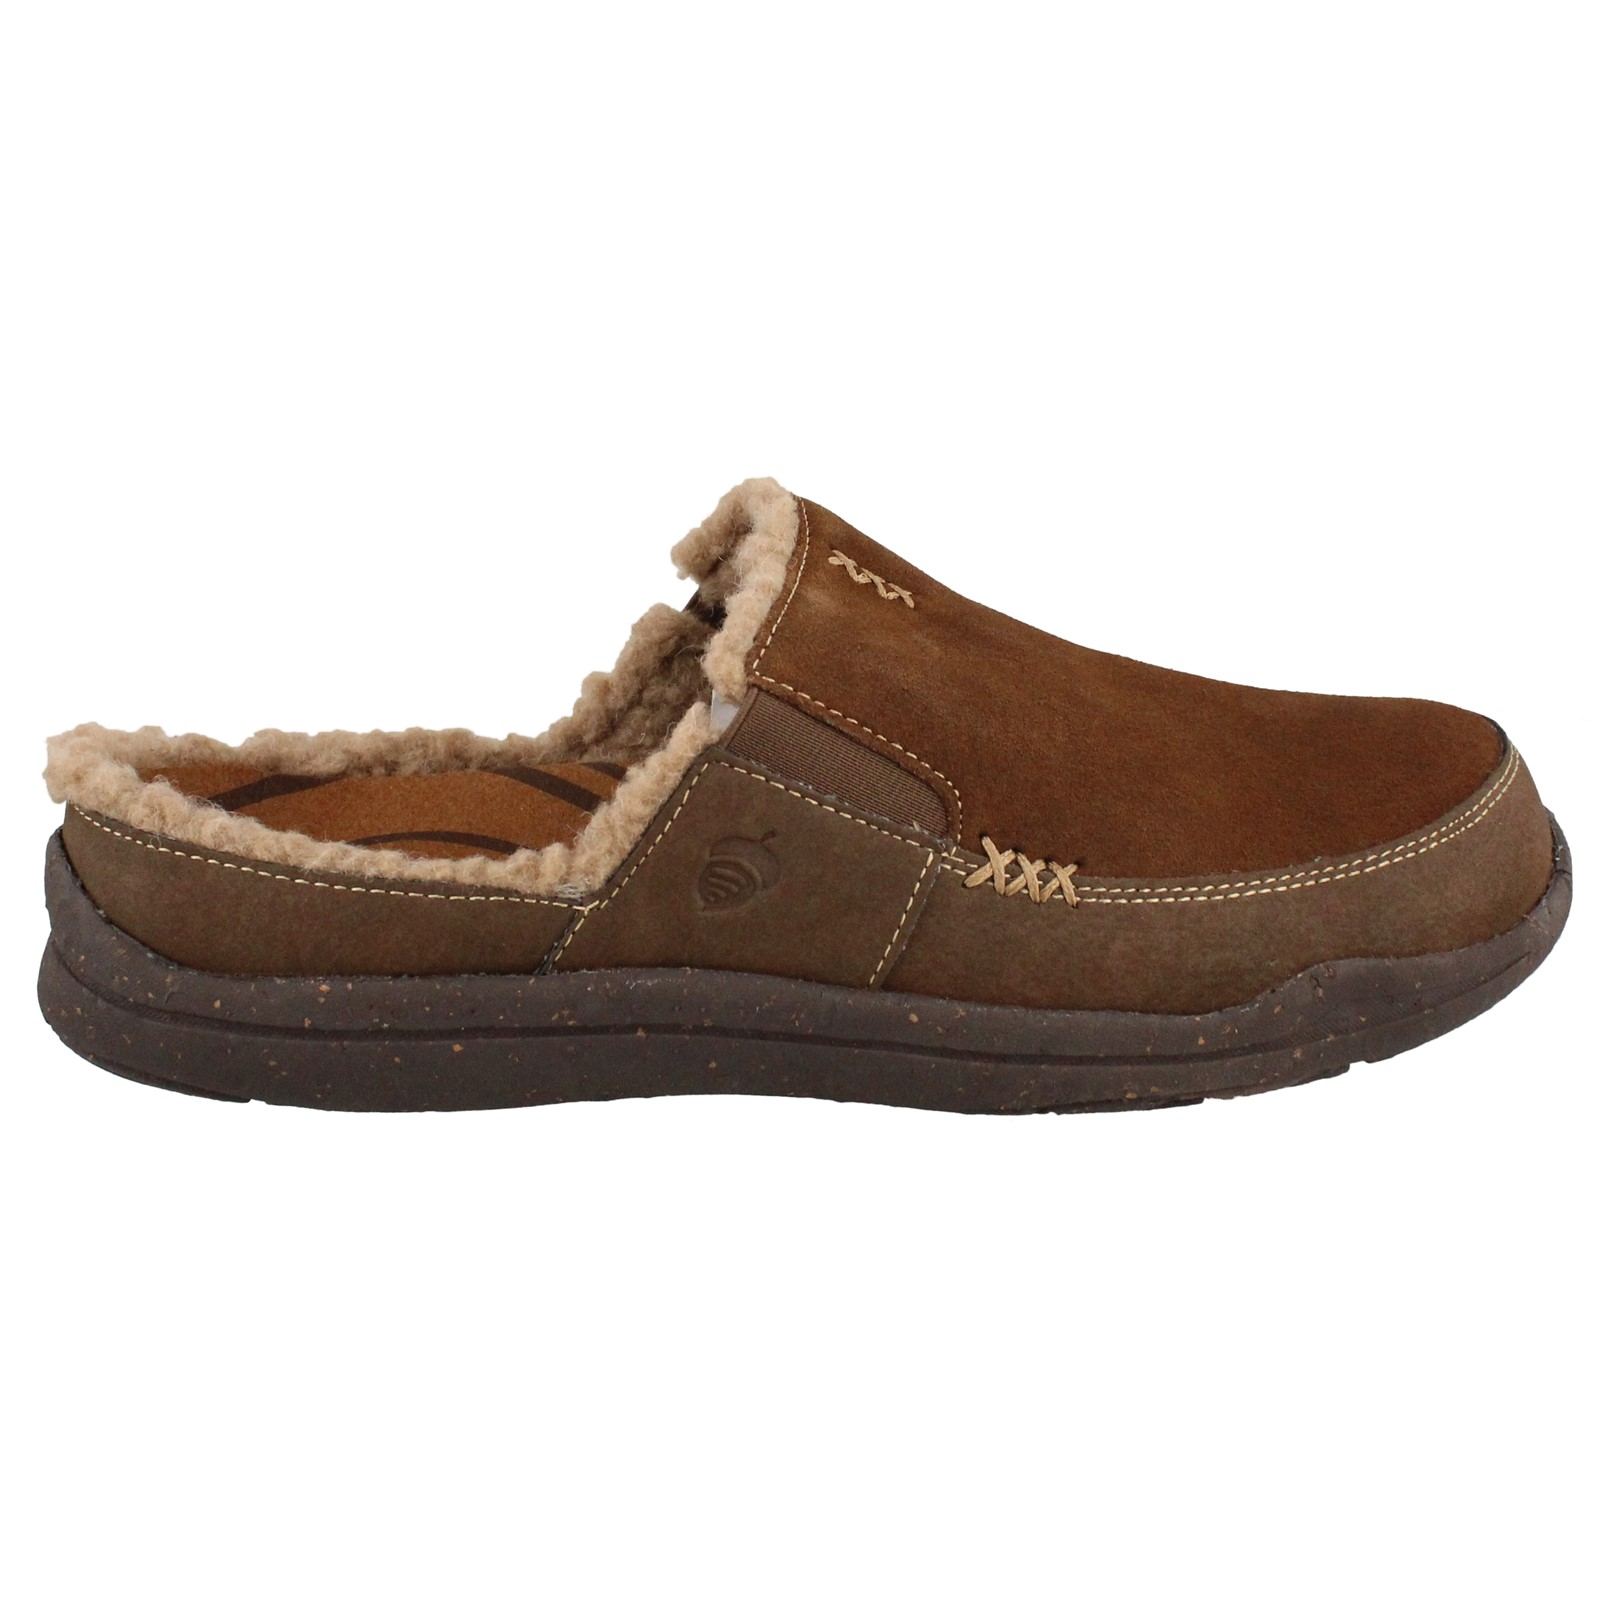 Men's Acorn, Wearabout Slide on house Shoe